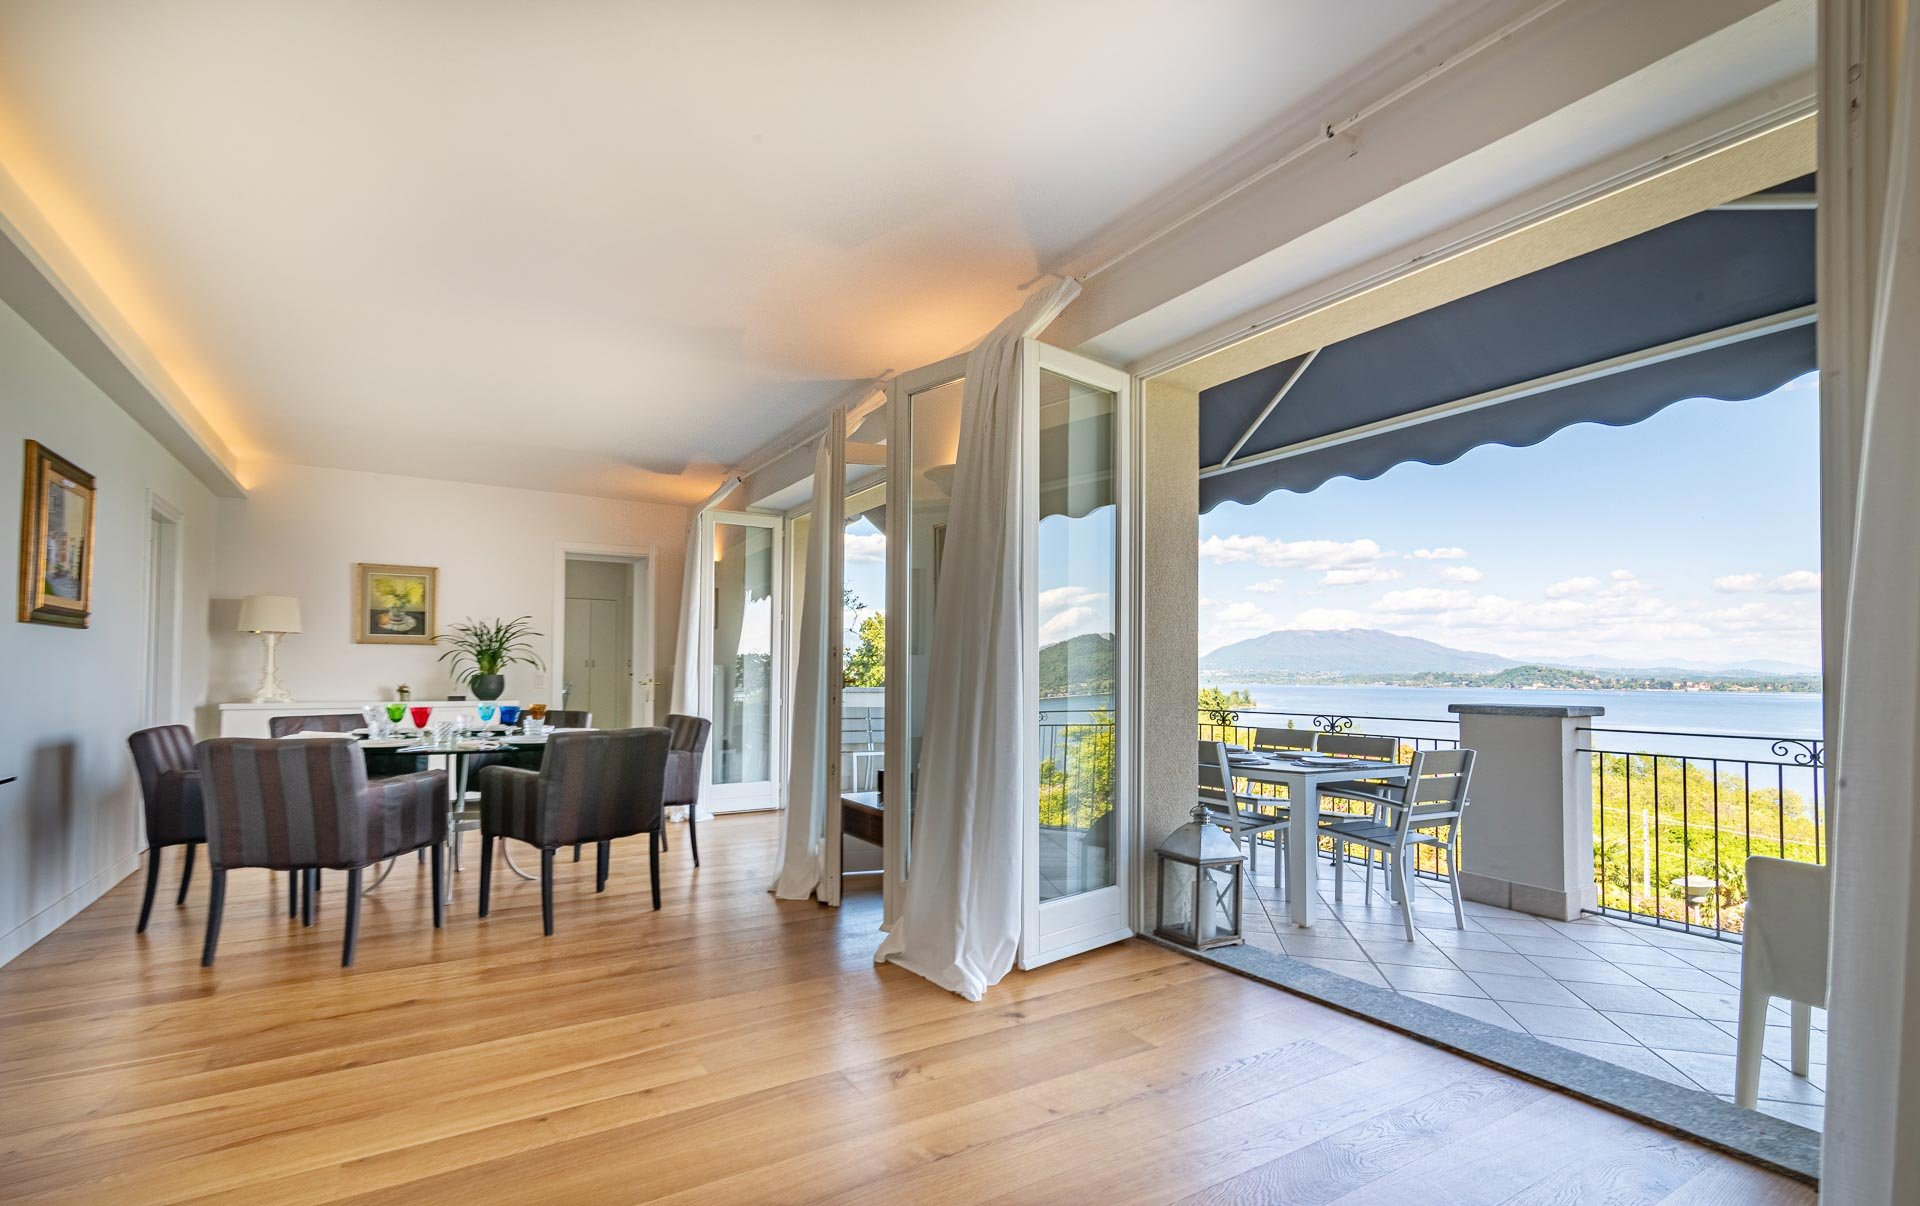 Elegant and sunny apartment with wonderful lake view and garden